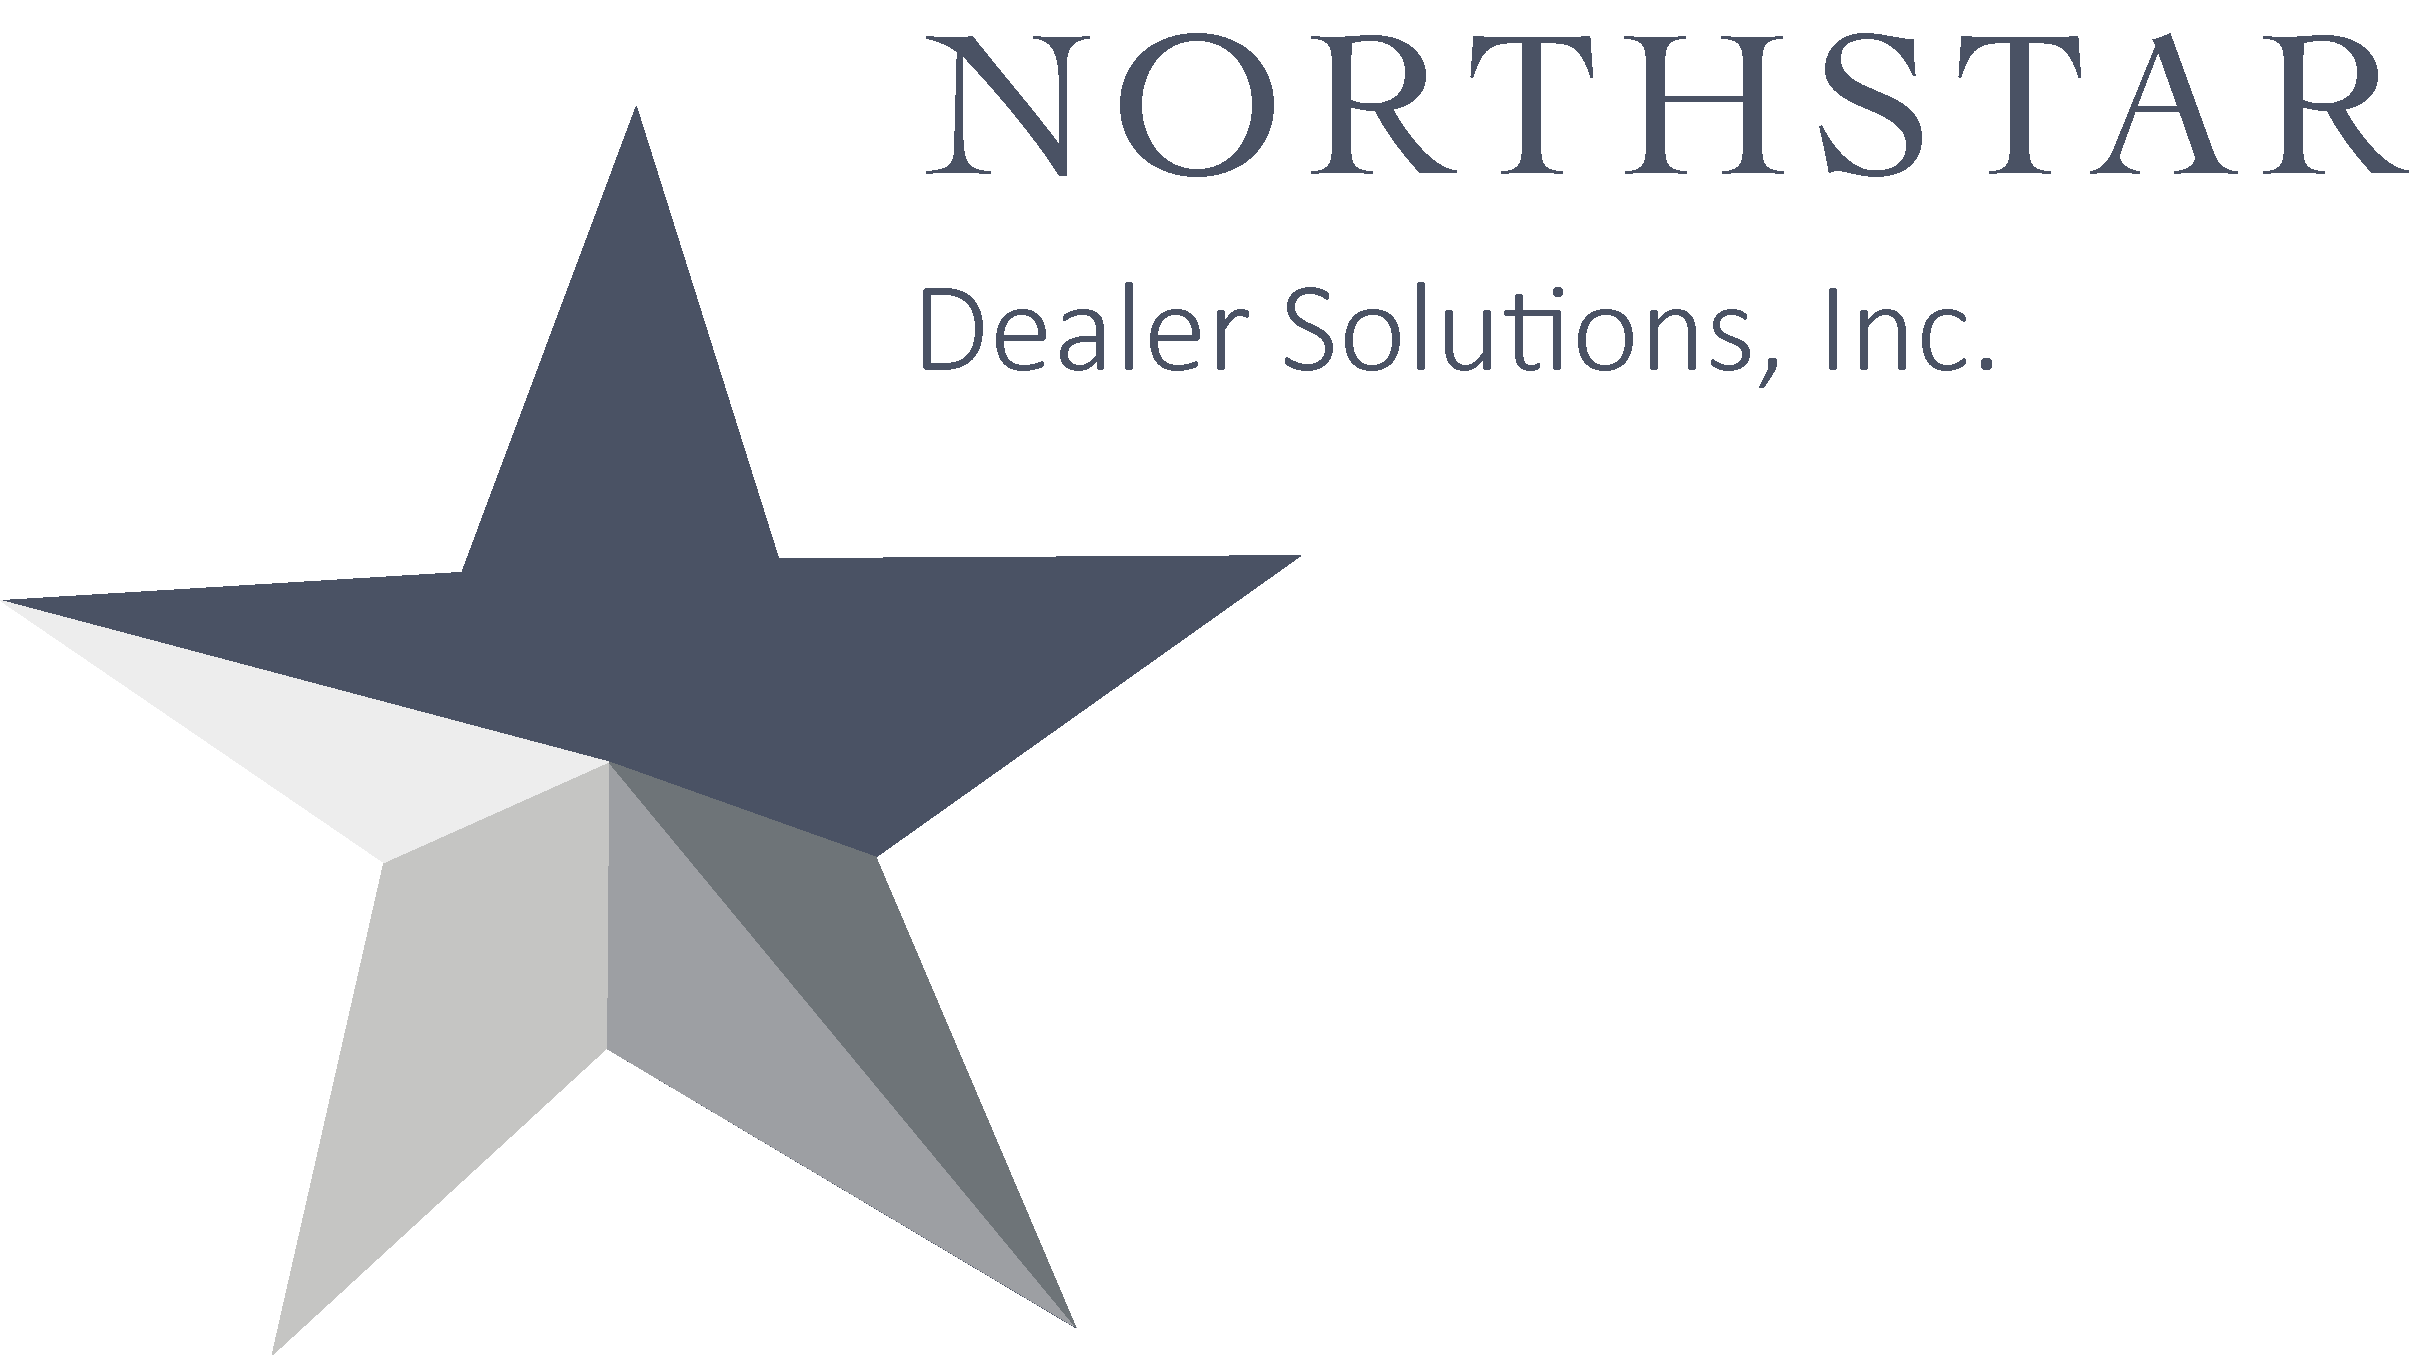 North Star Dealer